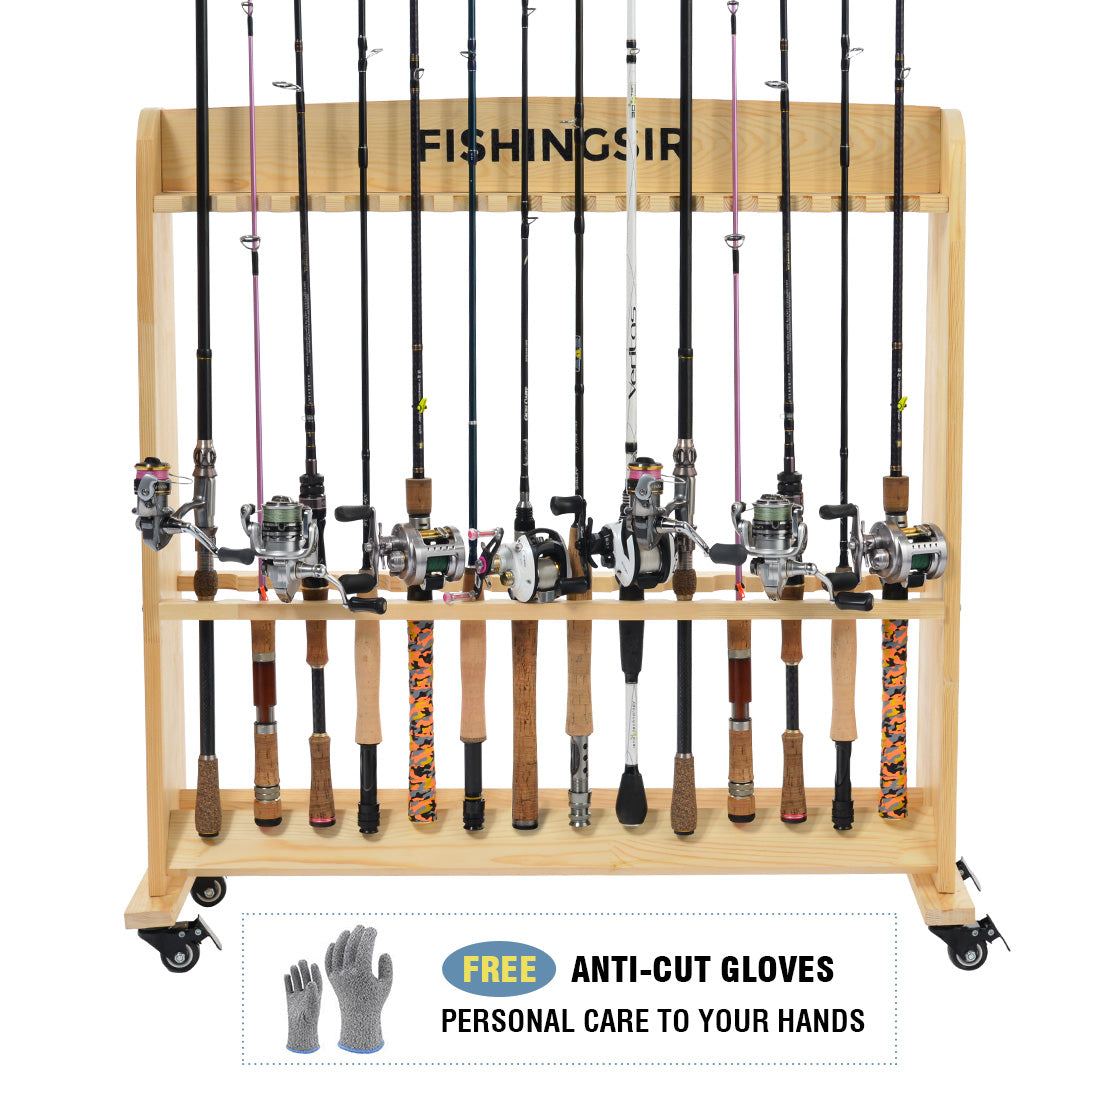 FISHINGSIR Fishing Rod Rack - 28 Wood Rod Holder with Wheels Fishing Pole Stand Rod Storage Organizer for All Fishing Rods Combo